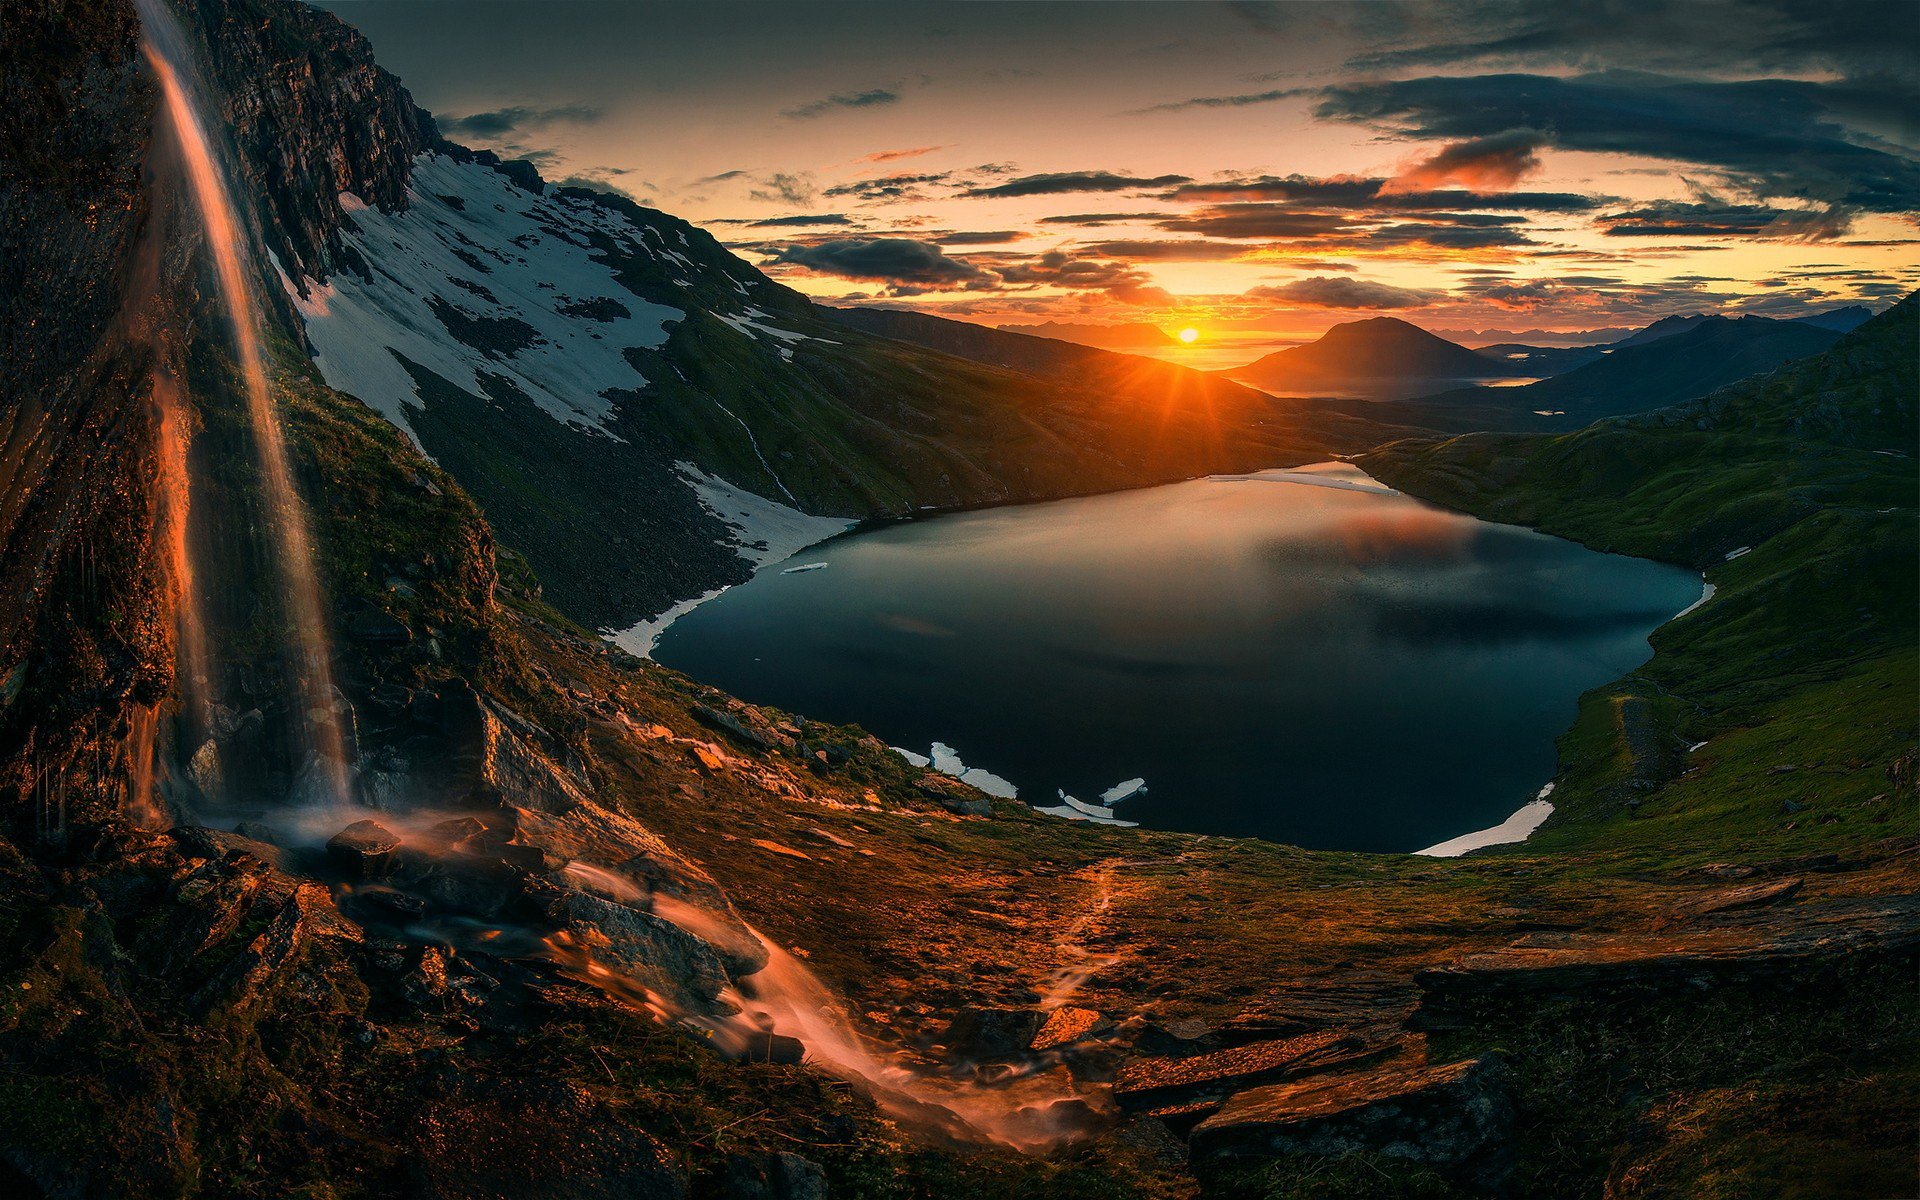 Sunset Over Mountains, HD Nature, 4k Wallpapers, Images ...